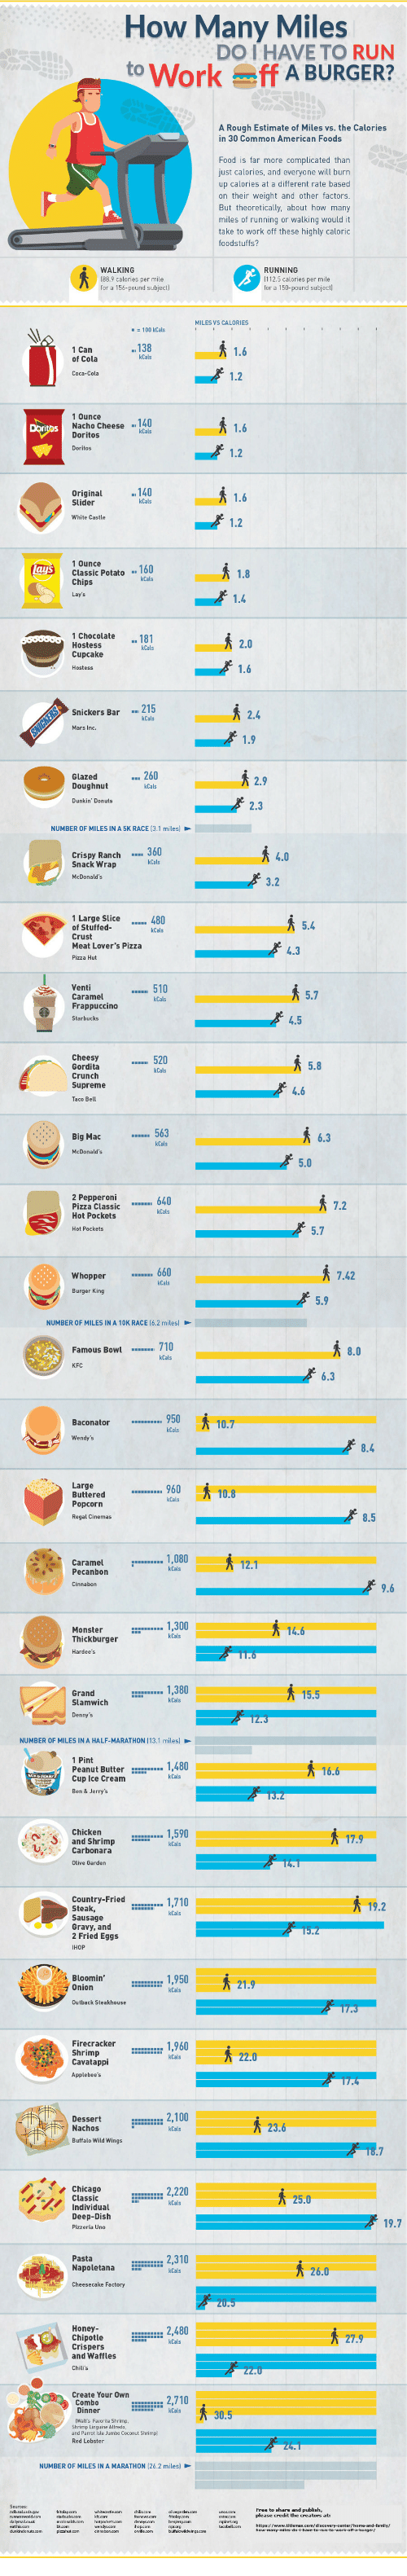 Monster, Pizza, and Run: How Many Miles  oWorkff A BURGER?  DO I HAVE TO RUN  A Rough Estimate of Miles vs. the Calories  in 30 Common American Foods  Foad is far more complicated than  just calarias, and avaryone will bum  up calones at dtherent rate based  n their weight and other facters  But theoretically, about how many  miles of running or walking would it  take to work off these highly caloric  or a 156-pound saact  ea 1301.6  Nacho Cheese 140  1.6  1 Ounce  Classic Petato 160  1.8  Checalate18  Snickers Bar 215  2.4  2.3  Crispy Ranch360  Snack Wrap  Large Slice  4.3  Caramet 510  Big Mac  2 Peppereni  Pizza Classic640  Hat Pockets  5.7  Whepper 660  7.42  Fameus o710  Baconator 950  96,  お0.8  1,080  Monster :r 1.300  NUMBER OF  Peanut Butter  Cup ice Cream  and Shrimp  1,710  Oravy, and  2 Fried Eggs  Bloomin'  onie. 1,950秀21.9  Chicage  Deep Dist  Napoletana  mm= 2.310  and Waffies  Conbo 30.5  HILES IN A MARATHON 1242 e